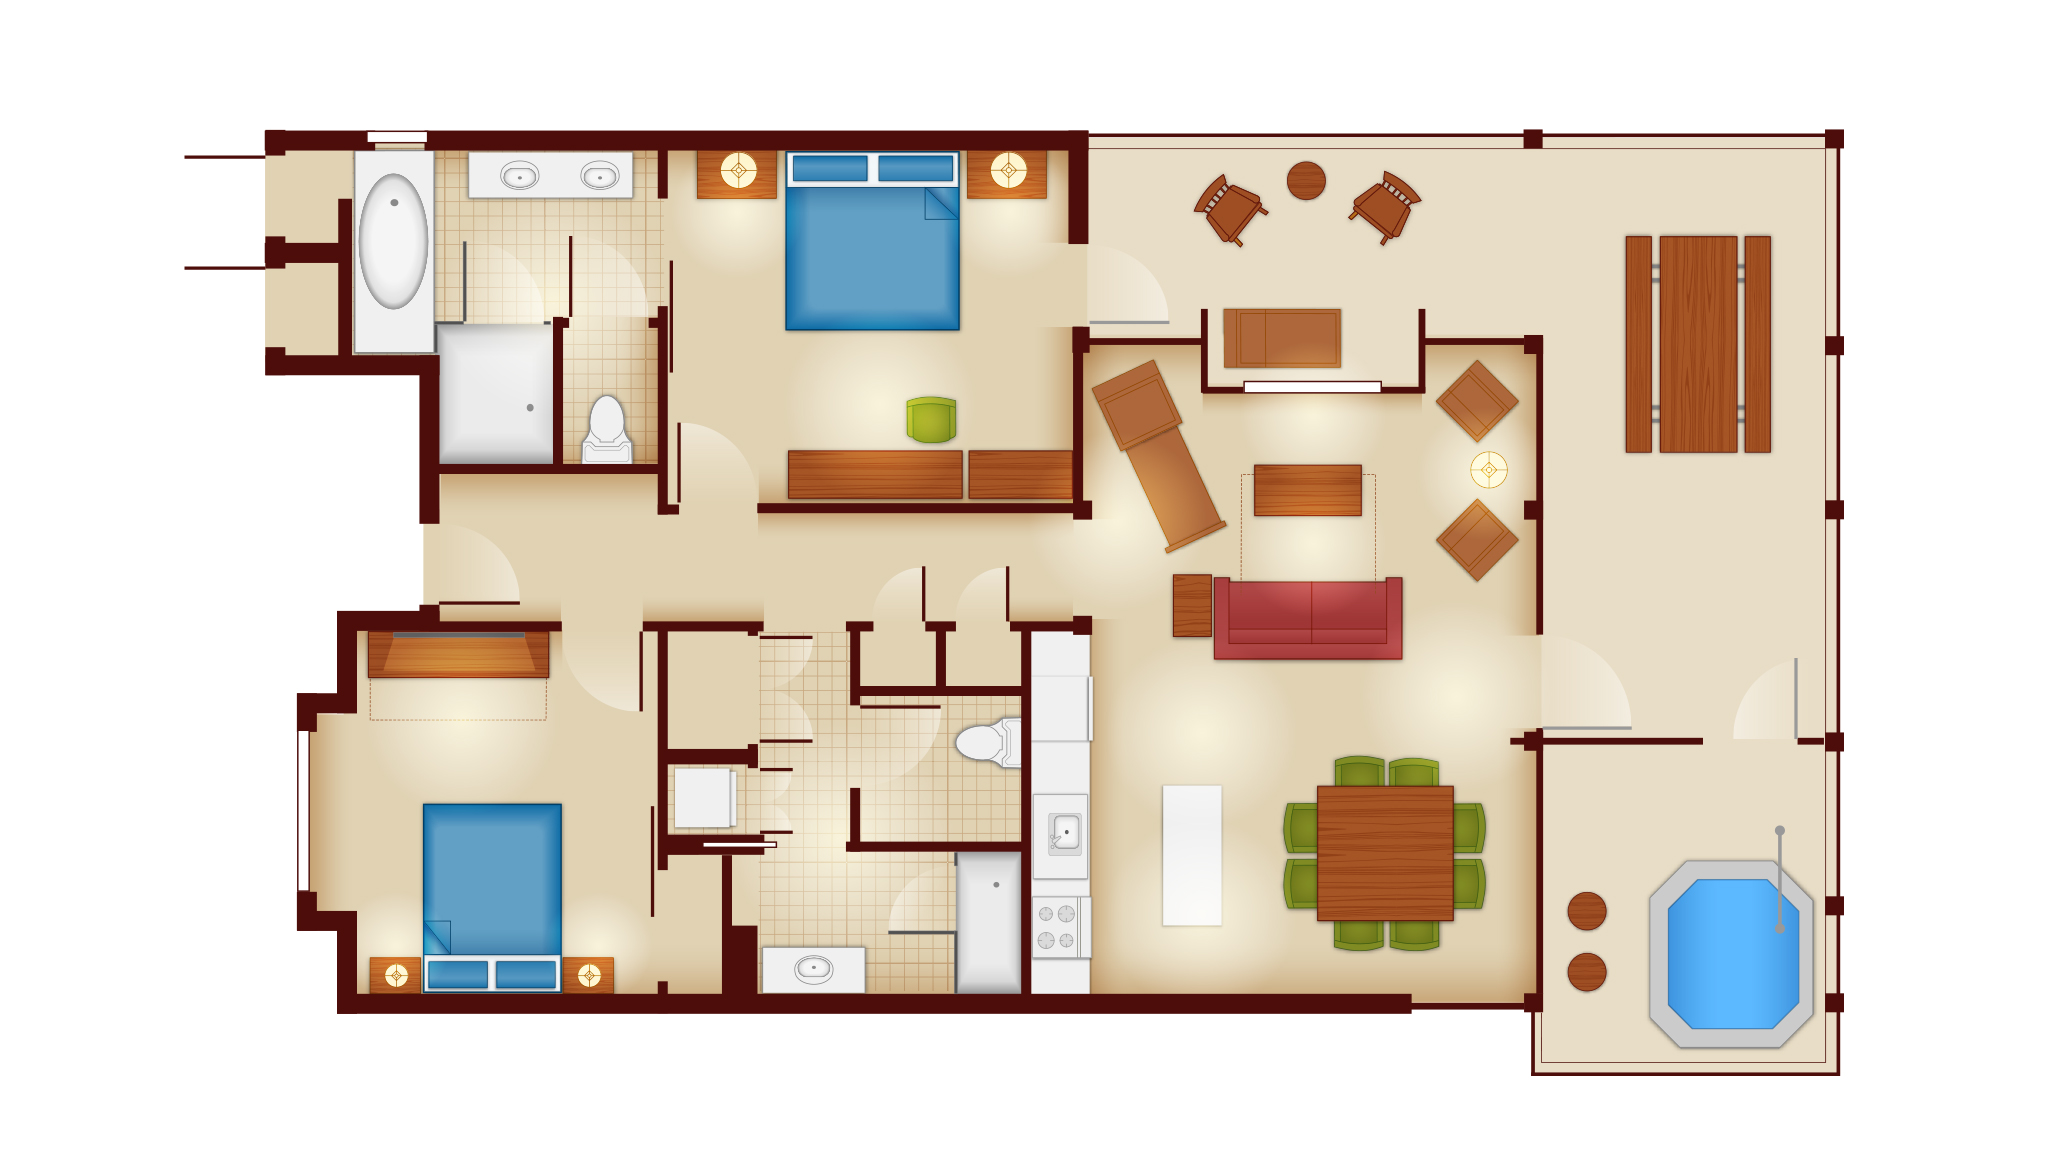 Photos Rooms And Floor Plans At Copper Creek Villas And Cabins At Disney S Wilderness Lodge